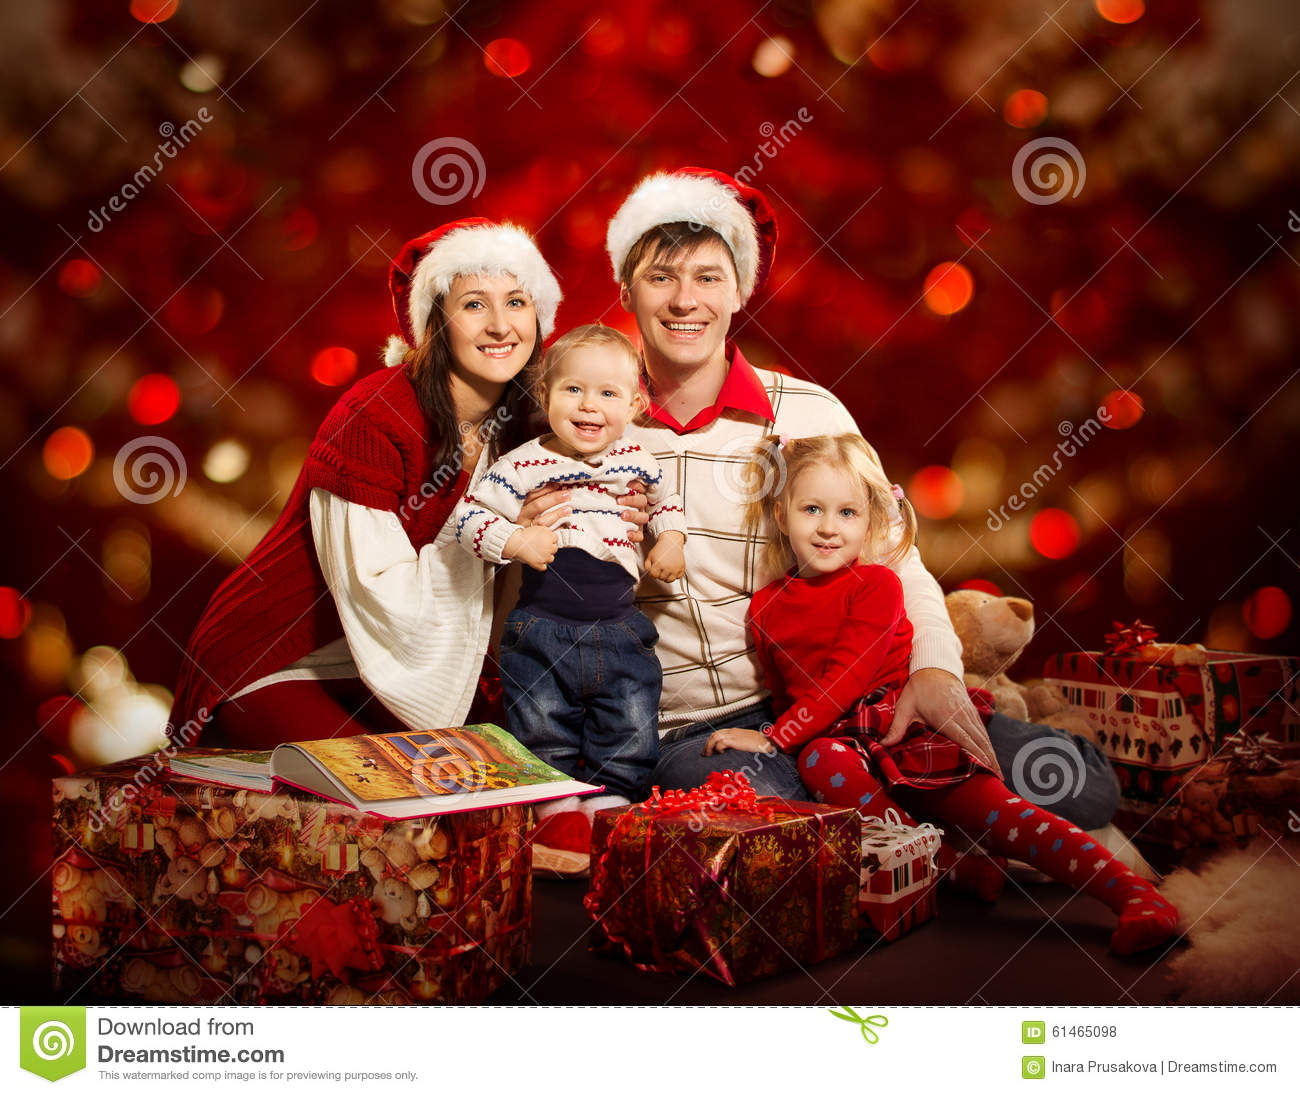 Christmas Family Photo Christmas Family Four Persons Mother Father Children Red Stock